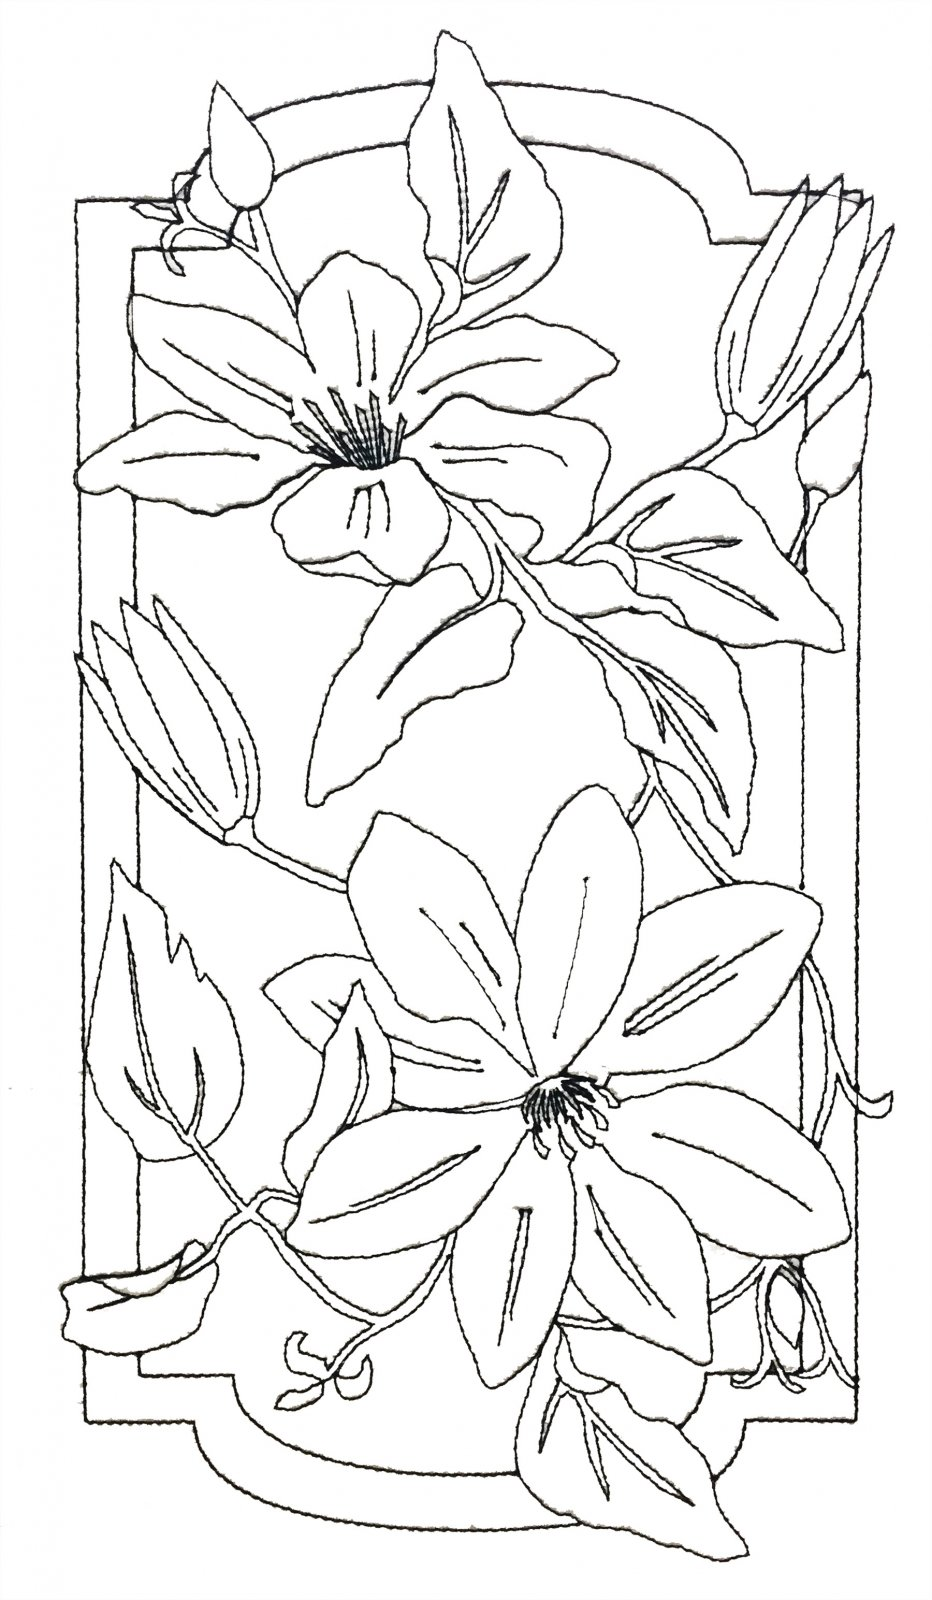 Pre-Stitched Art Applique blocks for coloring- Large Clematis (QA-14C)